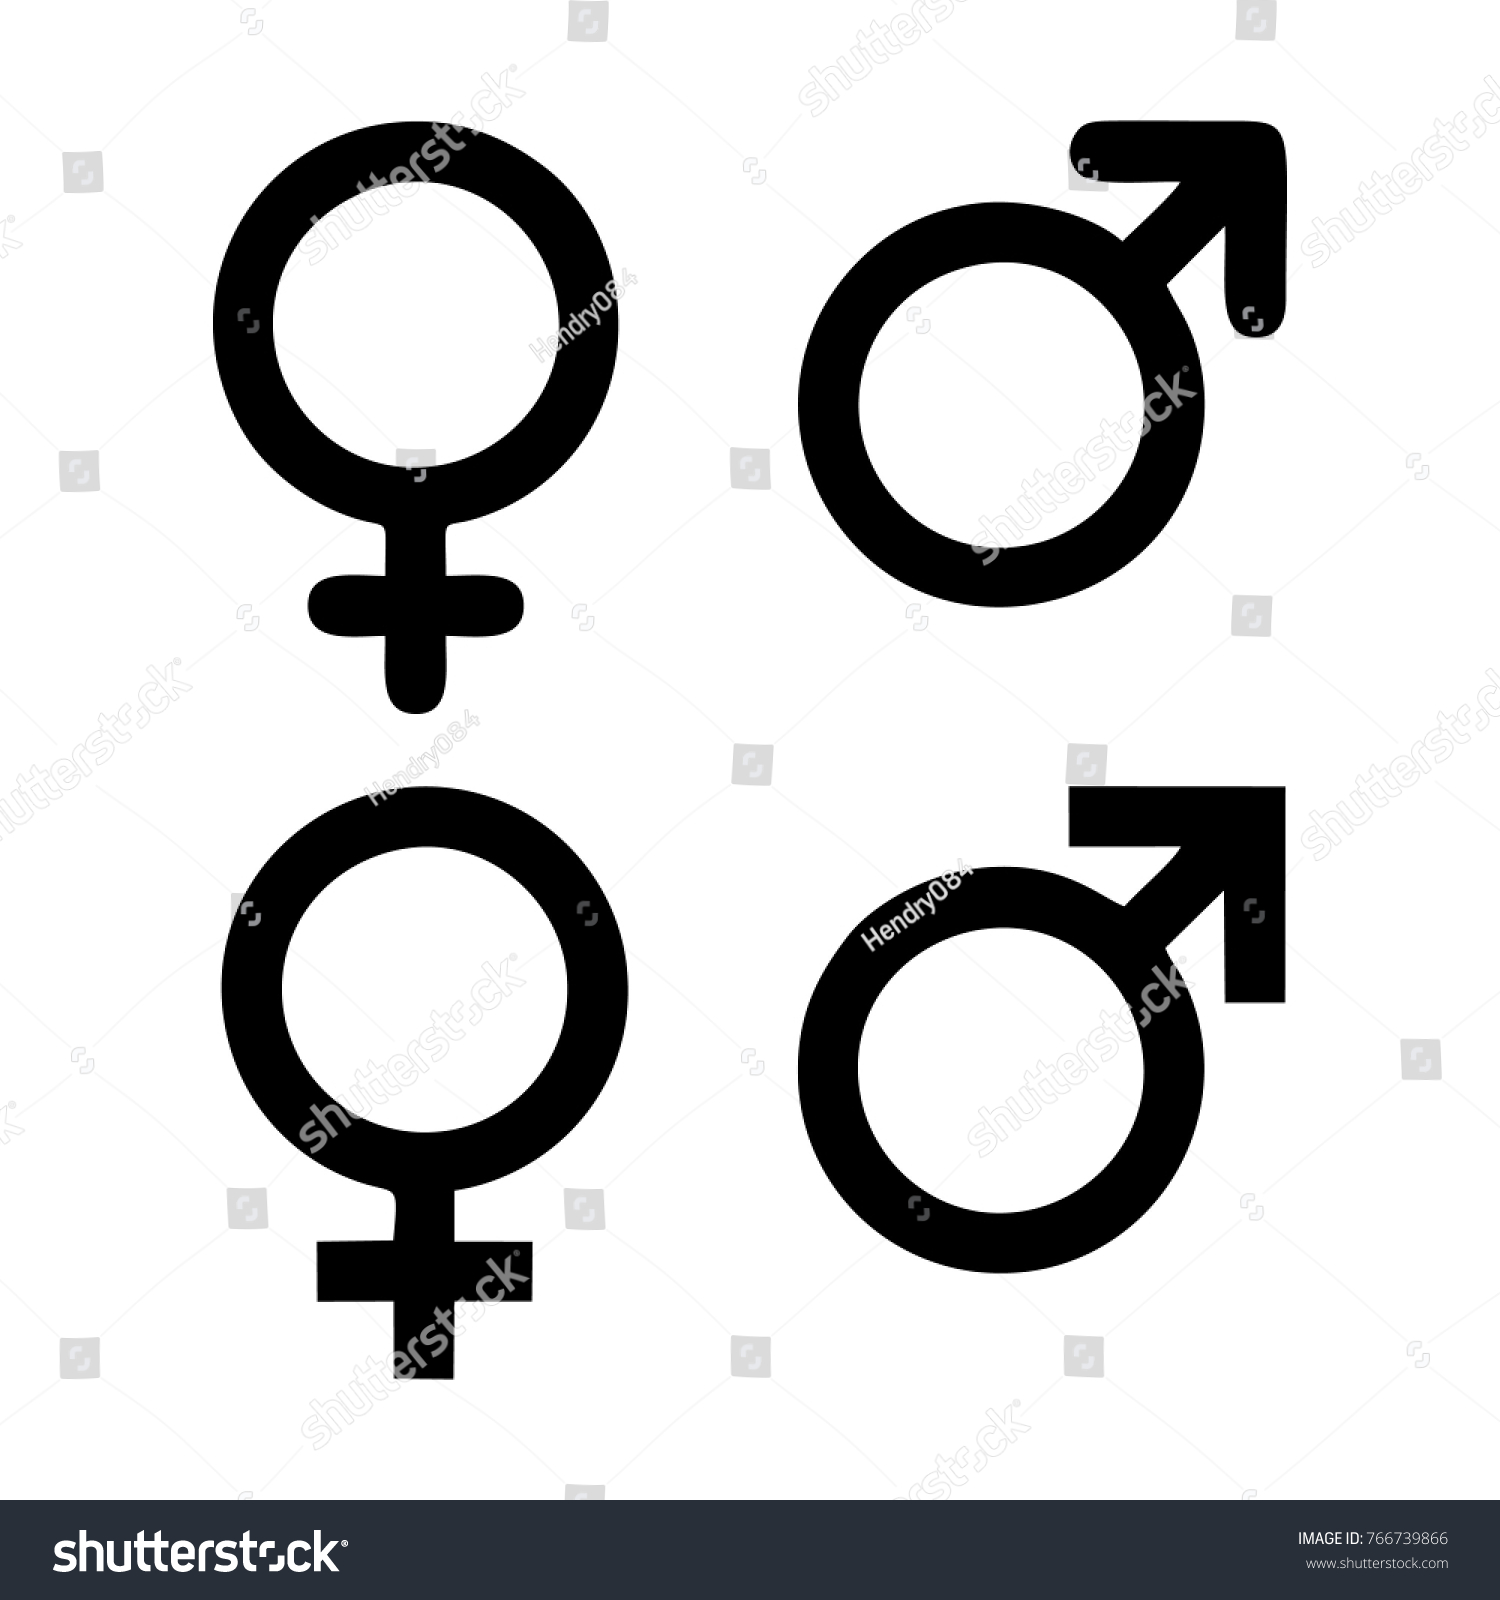 Male Female Symbol Set Stock Vector Royalty Free 766739866